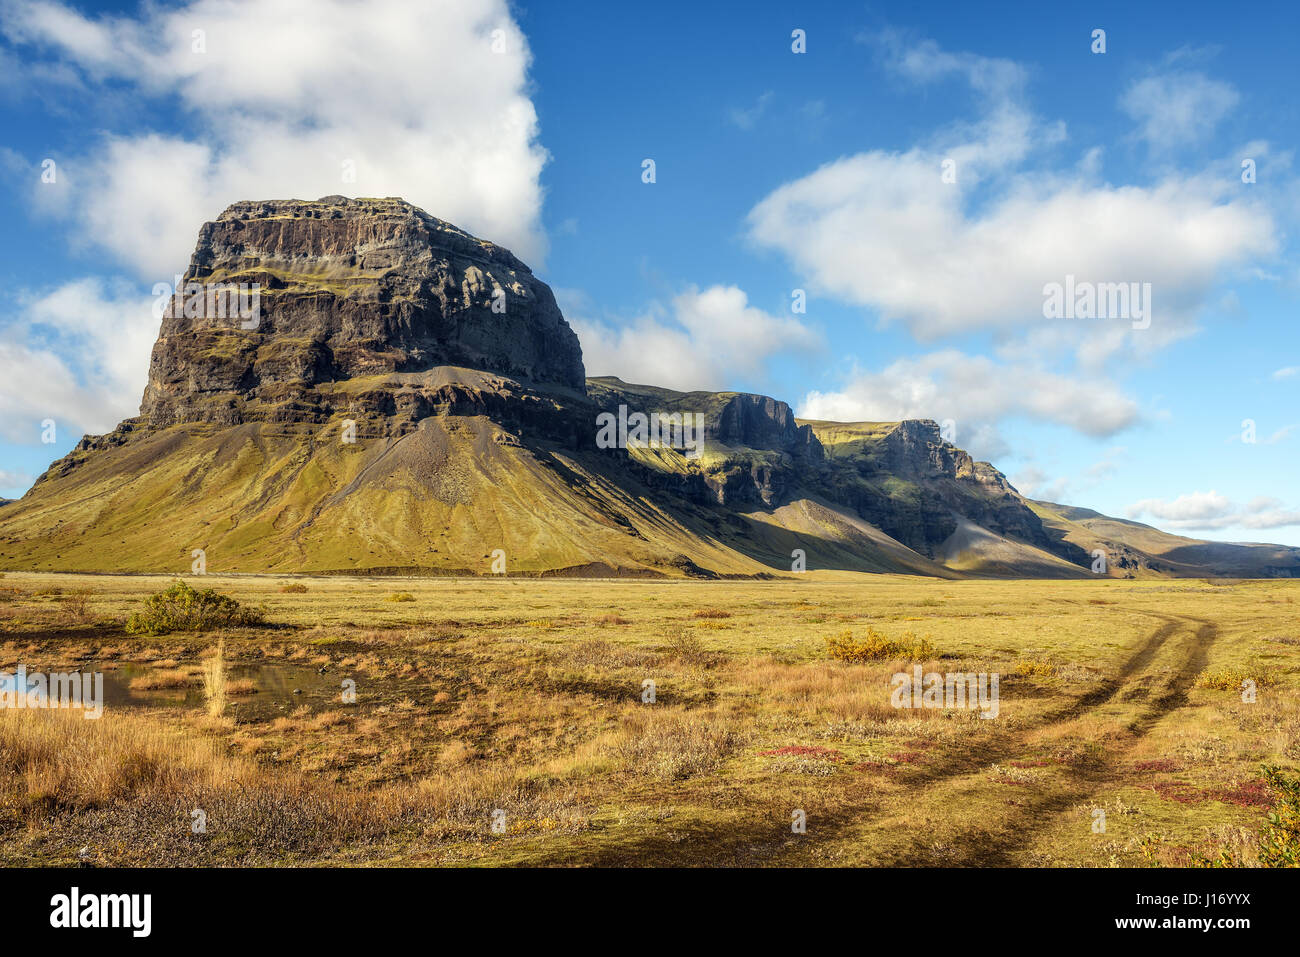 Scenic landscape with field winding car tracks in Iceland - Stock Image